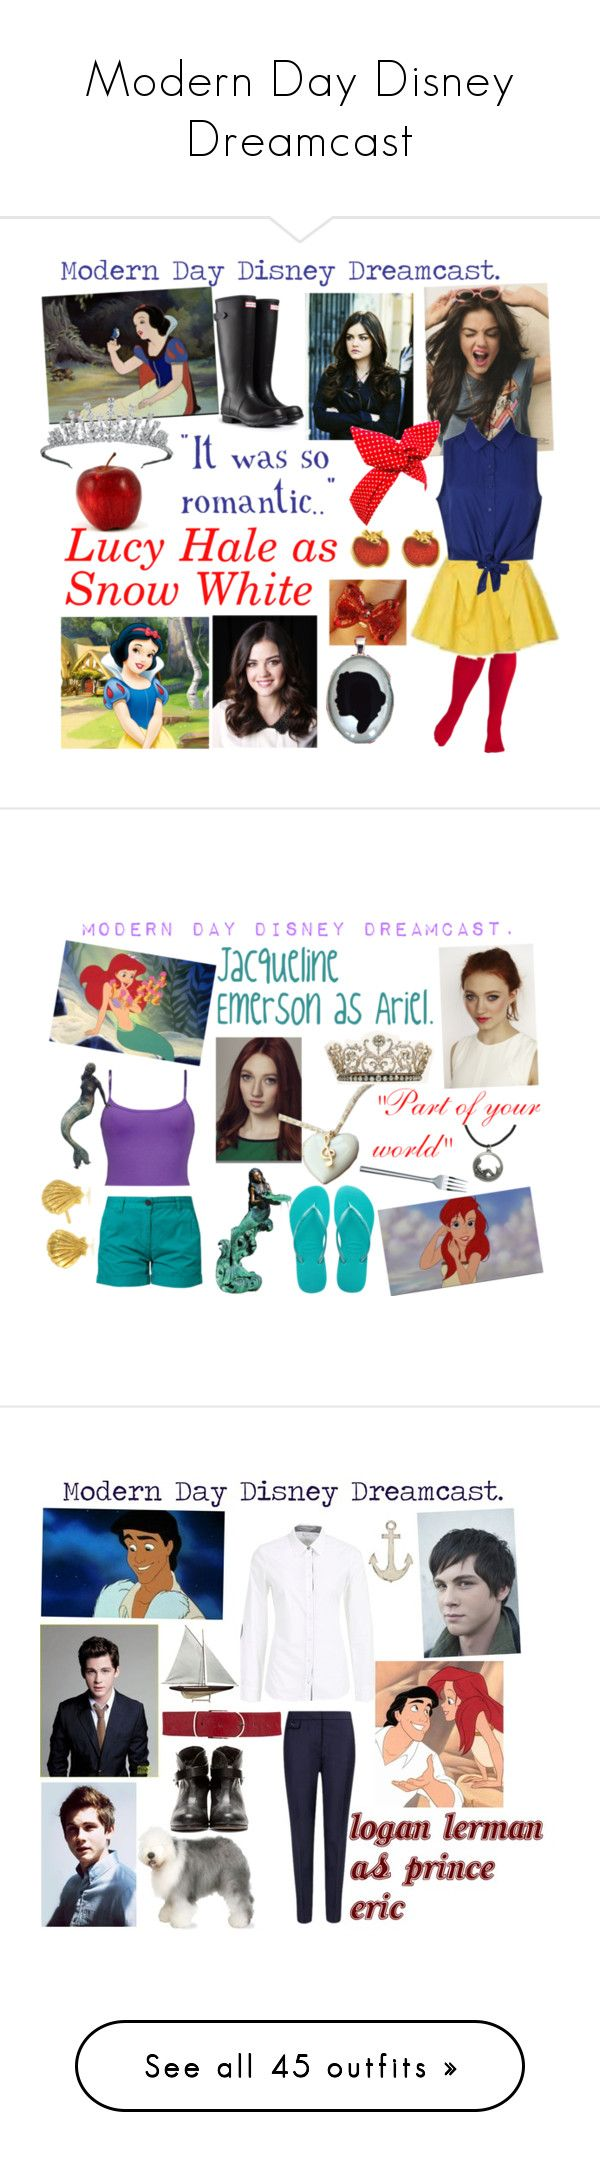 """""""Modern Day Disney Dreamcast"""" by iluvepeeta ❤ liked on Polyvore featuring Wildfox, Hunter, Van Cleef & Arpels, Disney Couture, Disney, modern, Emerson, BKE, MKT studio and Havaianas"""